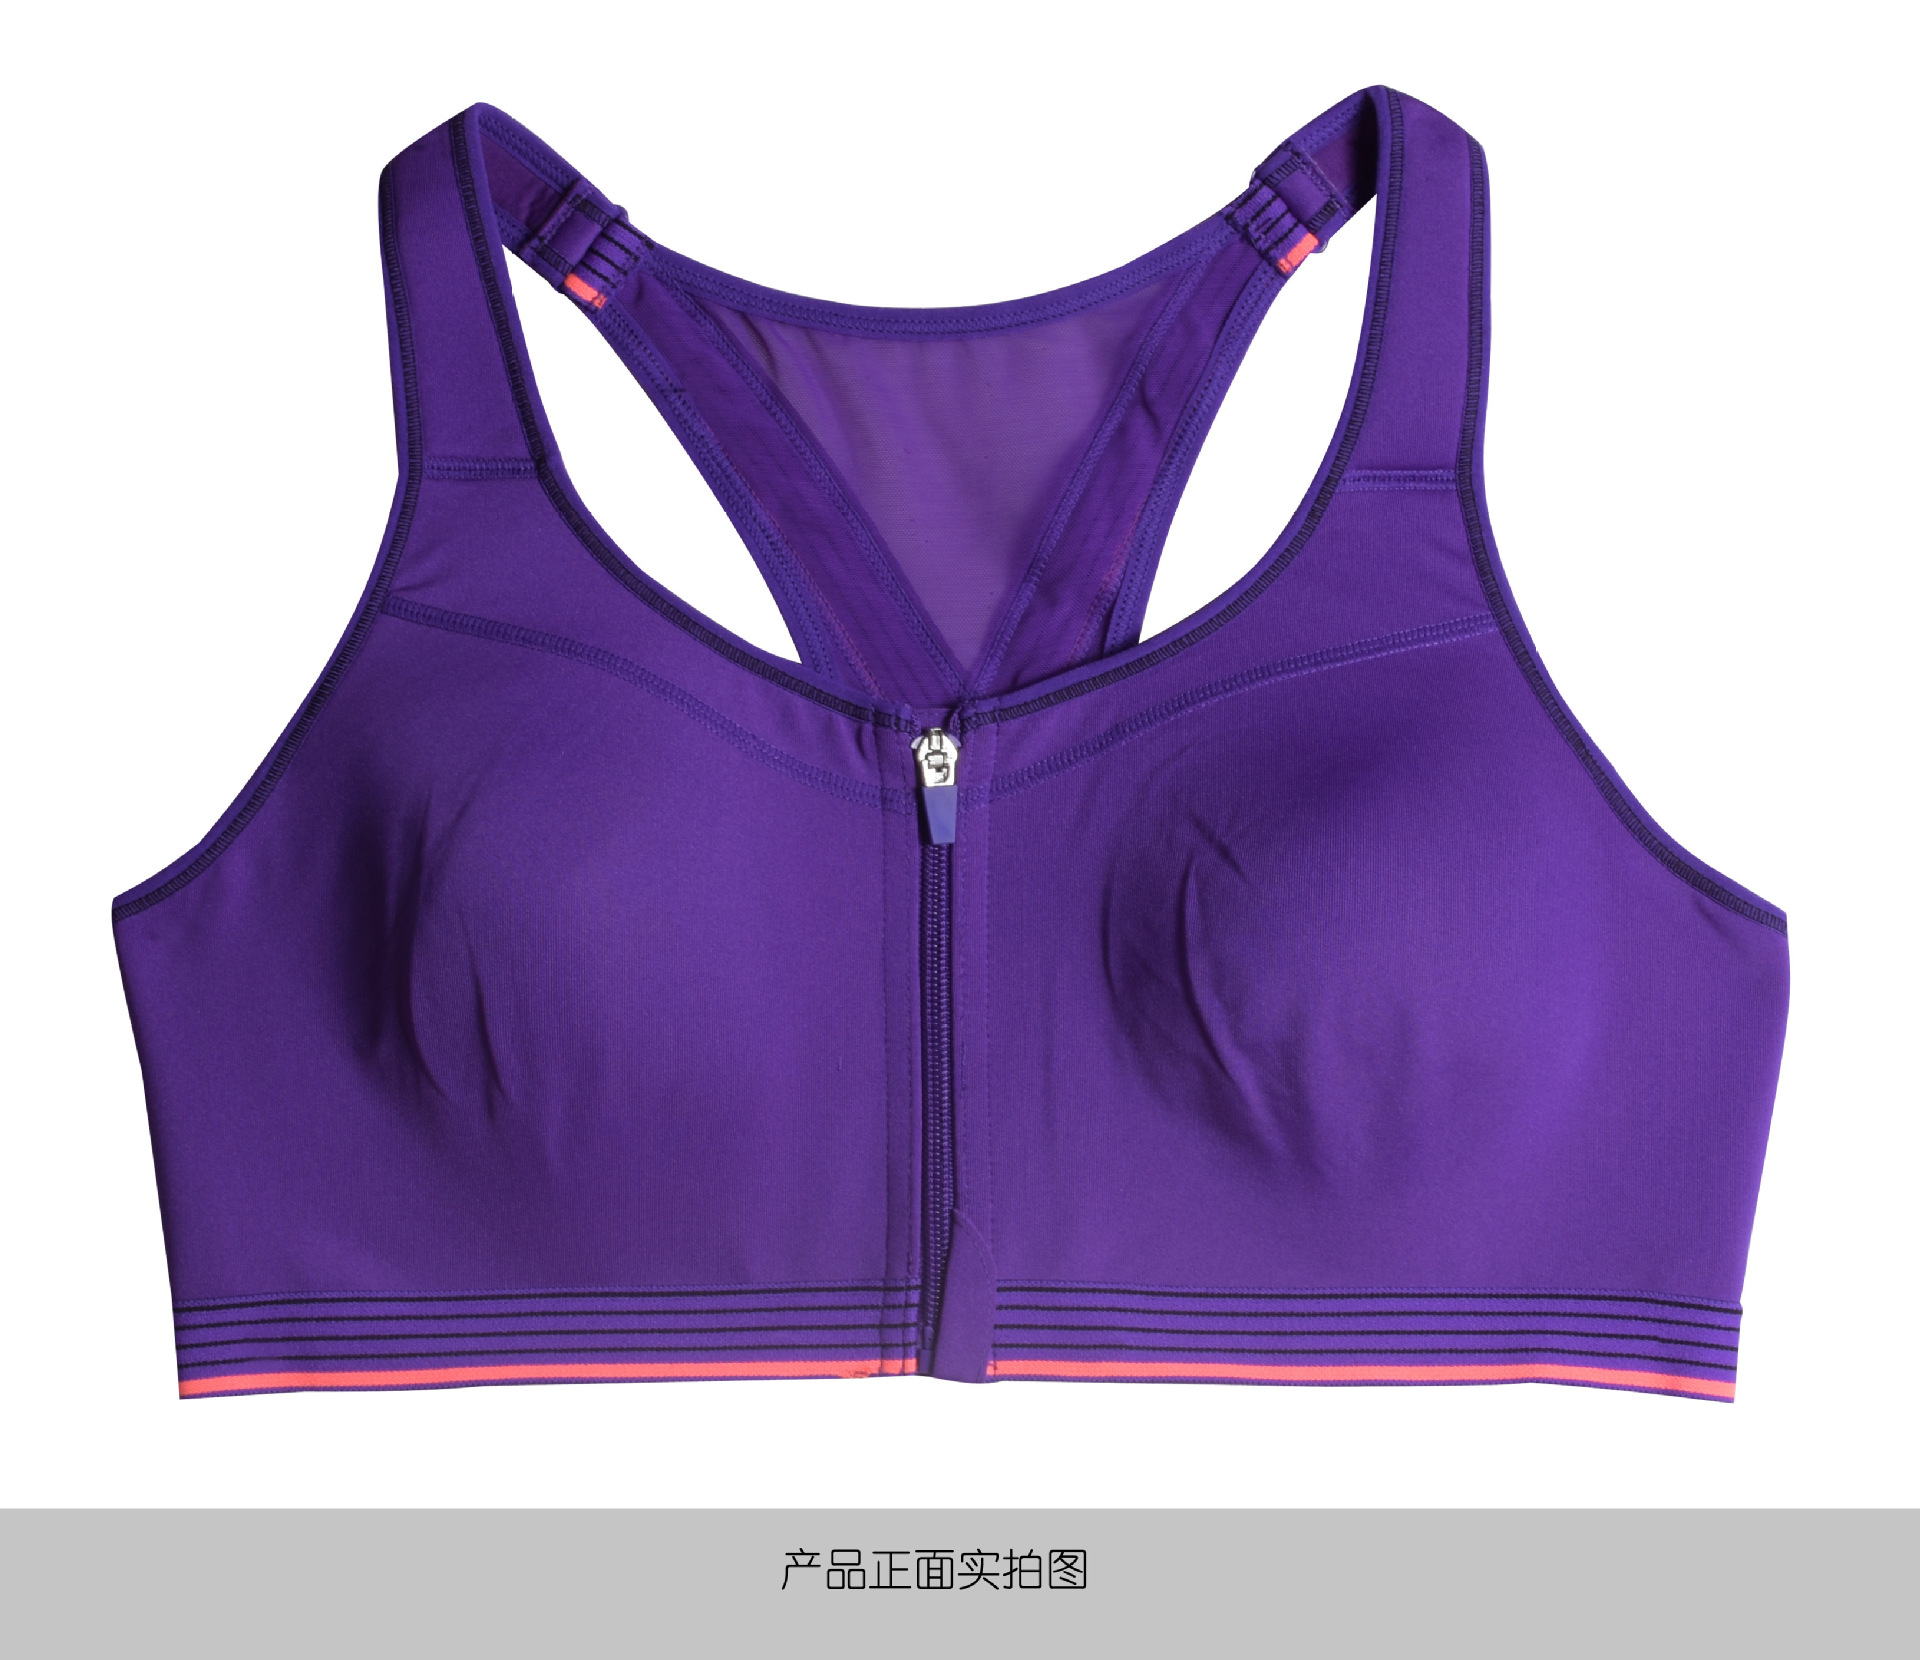 d322babeac539 ... No Steel Bras Kids Harness Training Bra. 3 USD. Product Detail